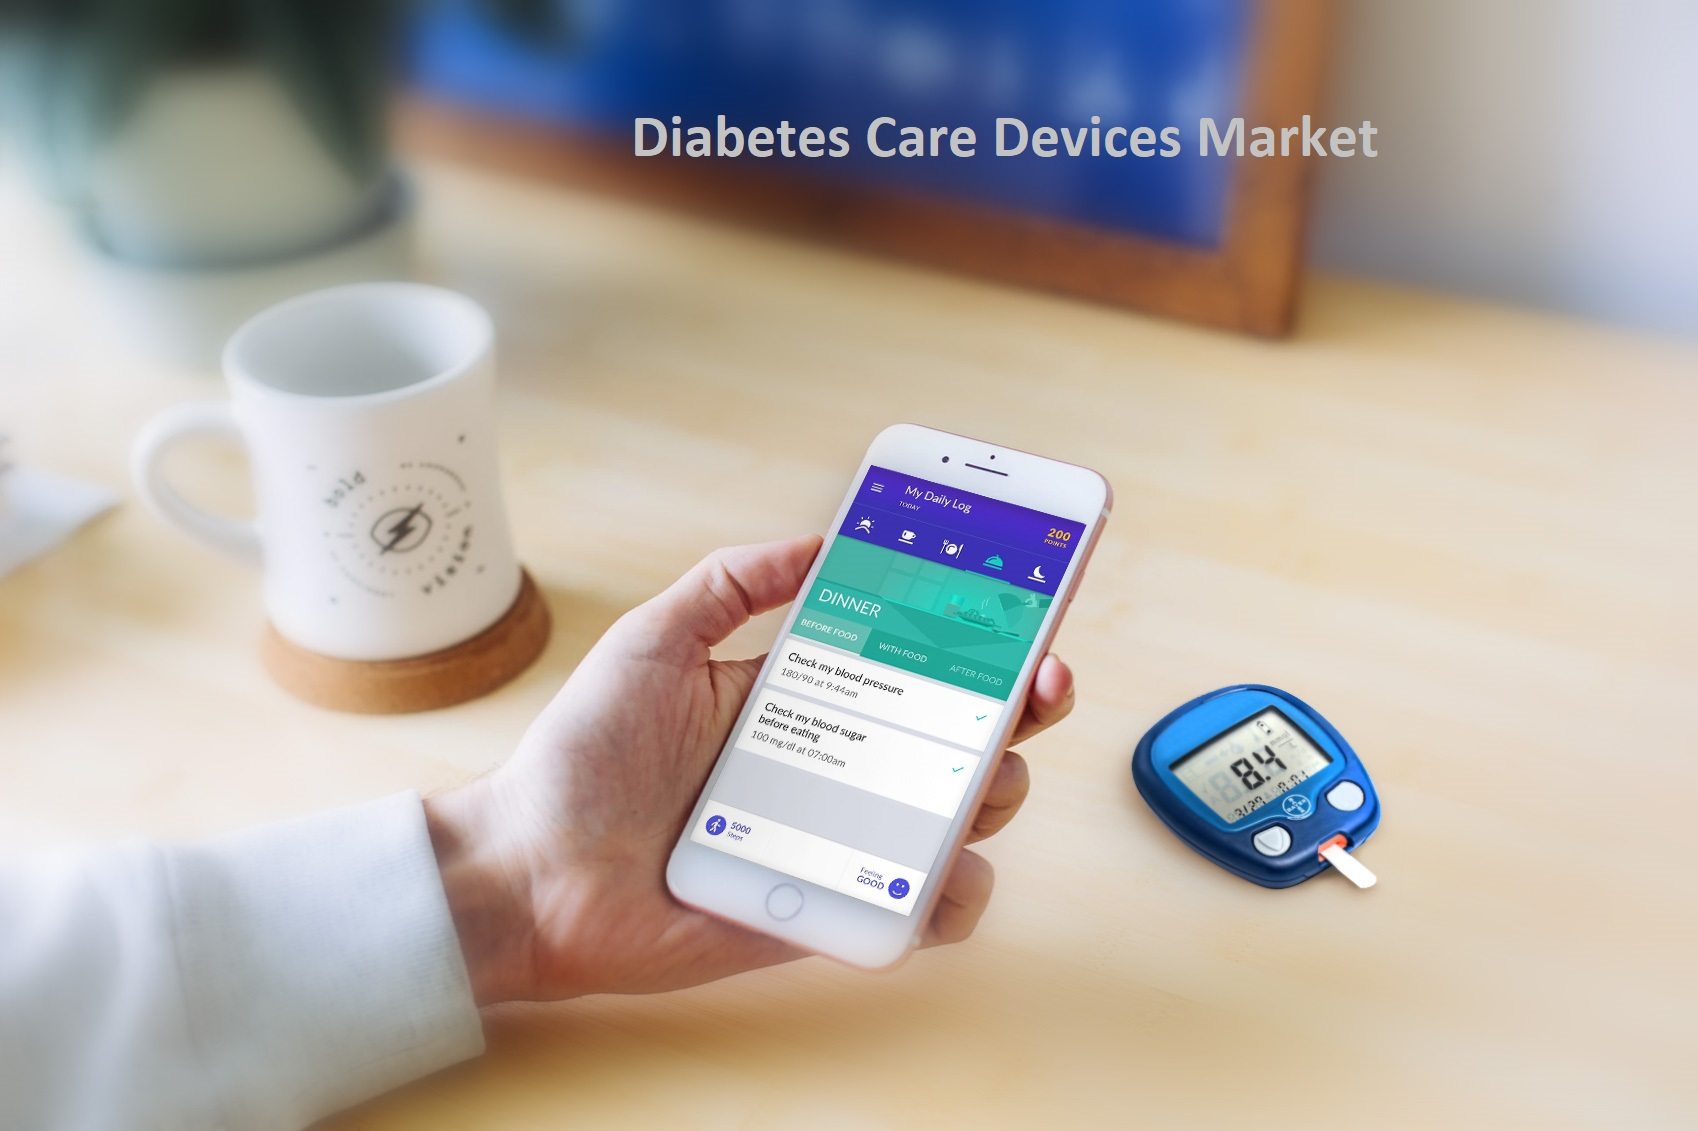 Diabetes Care Devices